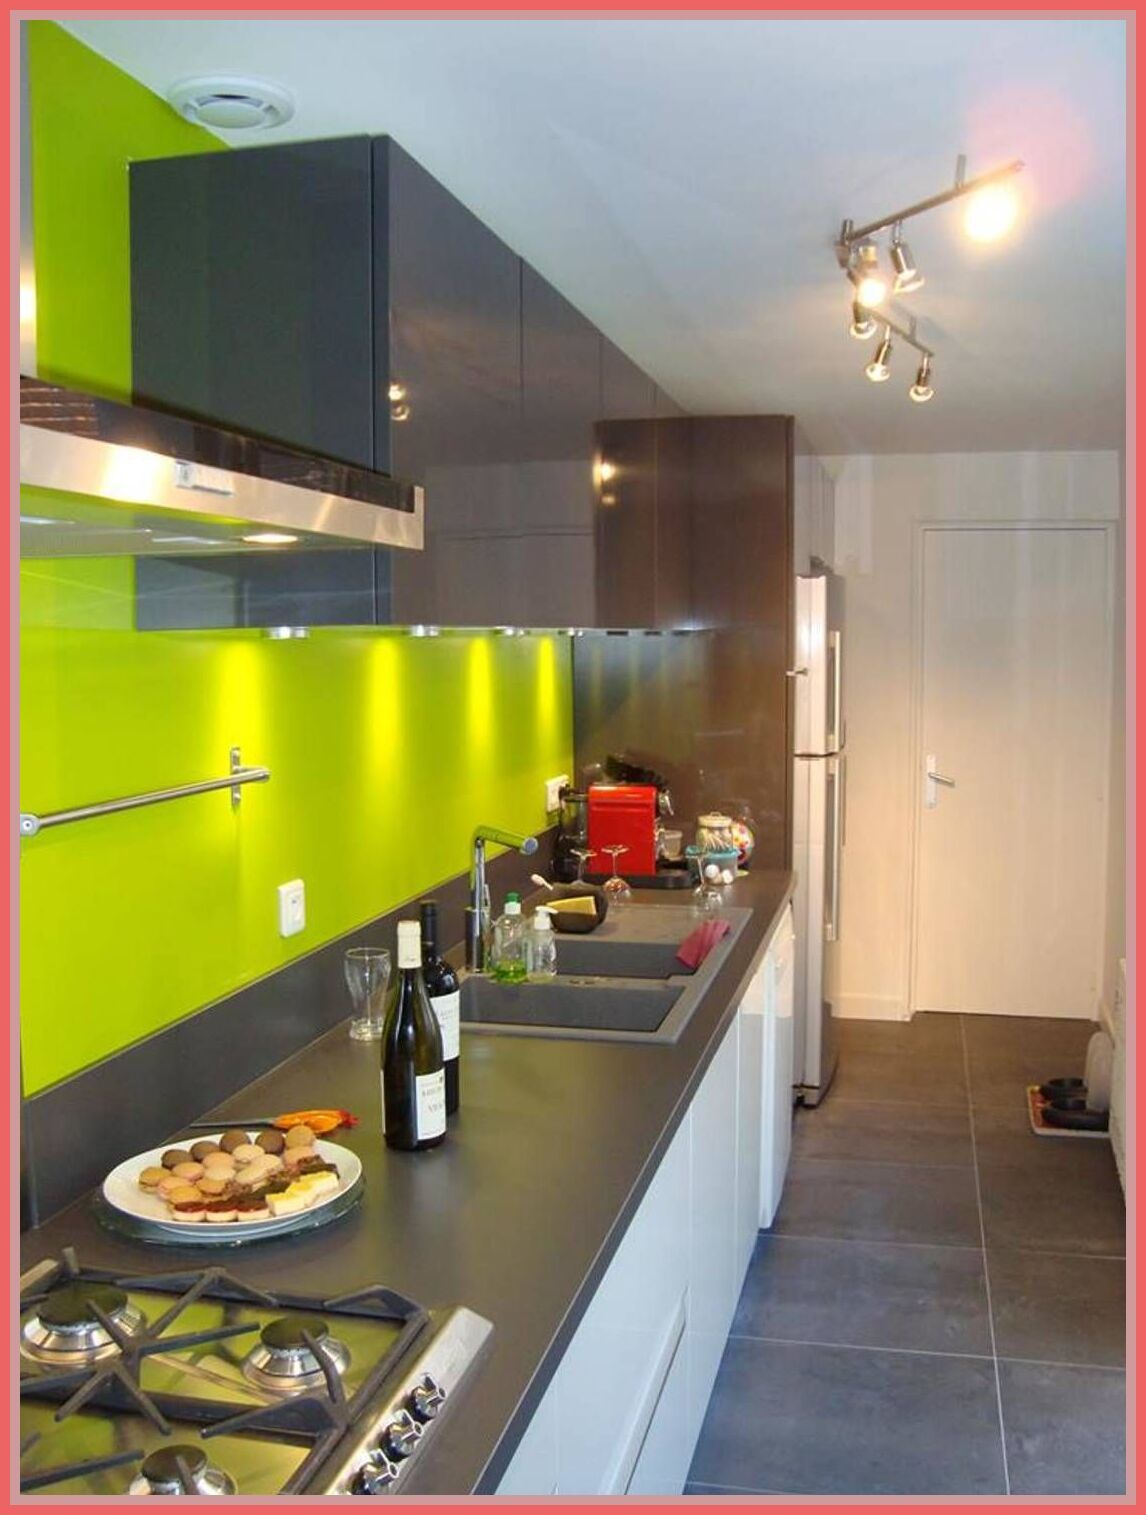 102 Reference Of Lime Green Kitchen Decorating Ideas Lime Green Kitchen Kitchen Design Green Kitchen Decor